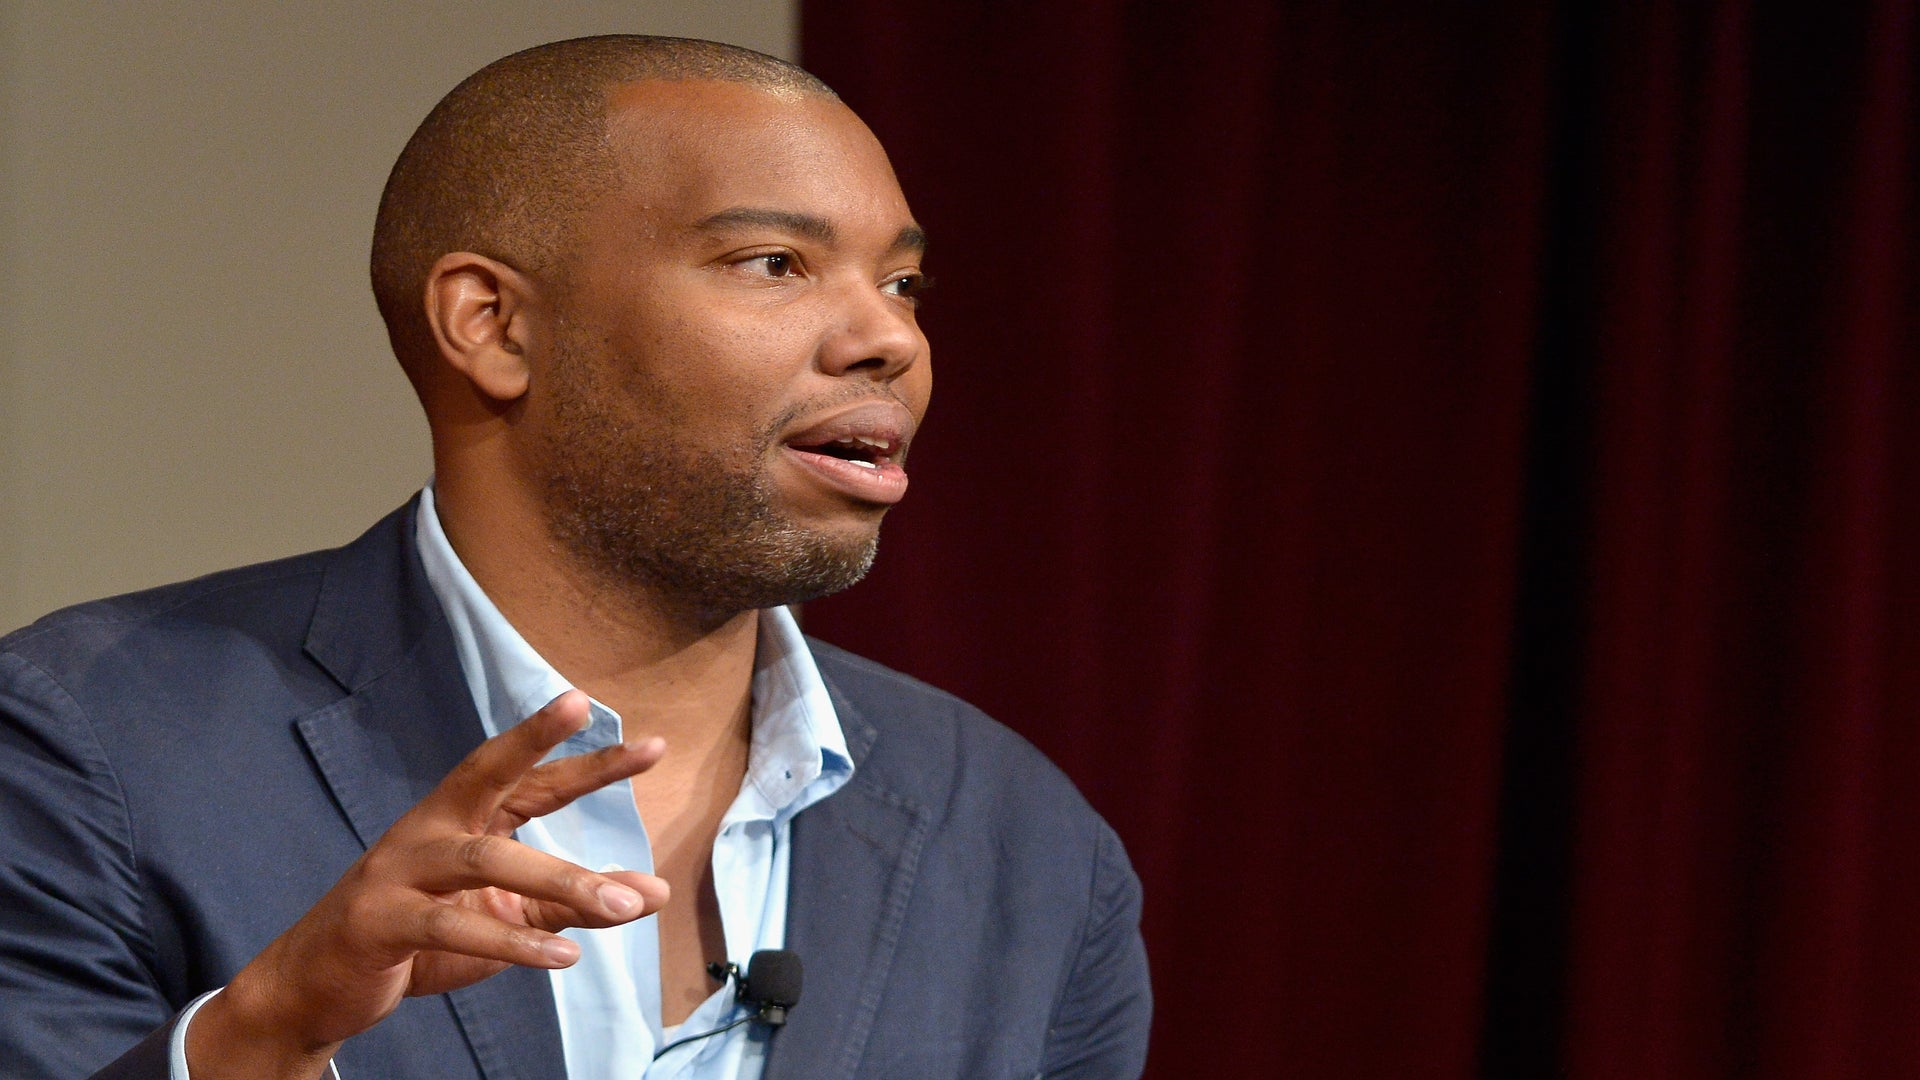 Ta-Nehisi Coates Says John Kelly's Civil War Comments Perfectly Illustrate The Effects Of White Supremacy